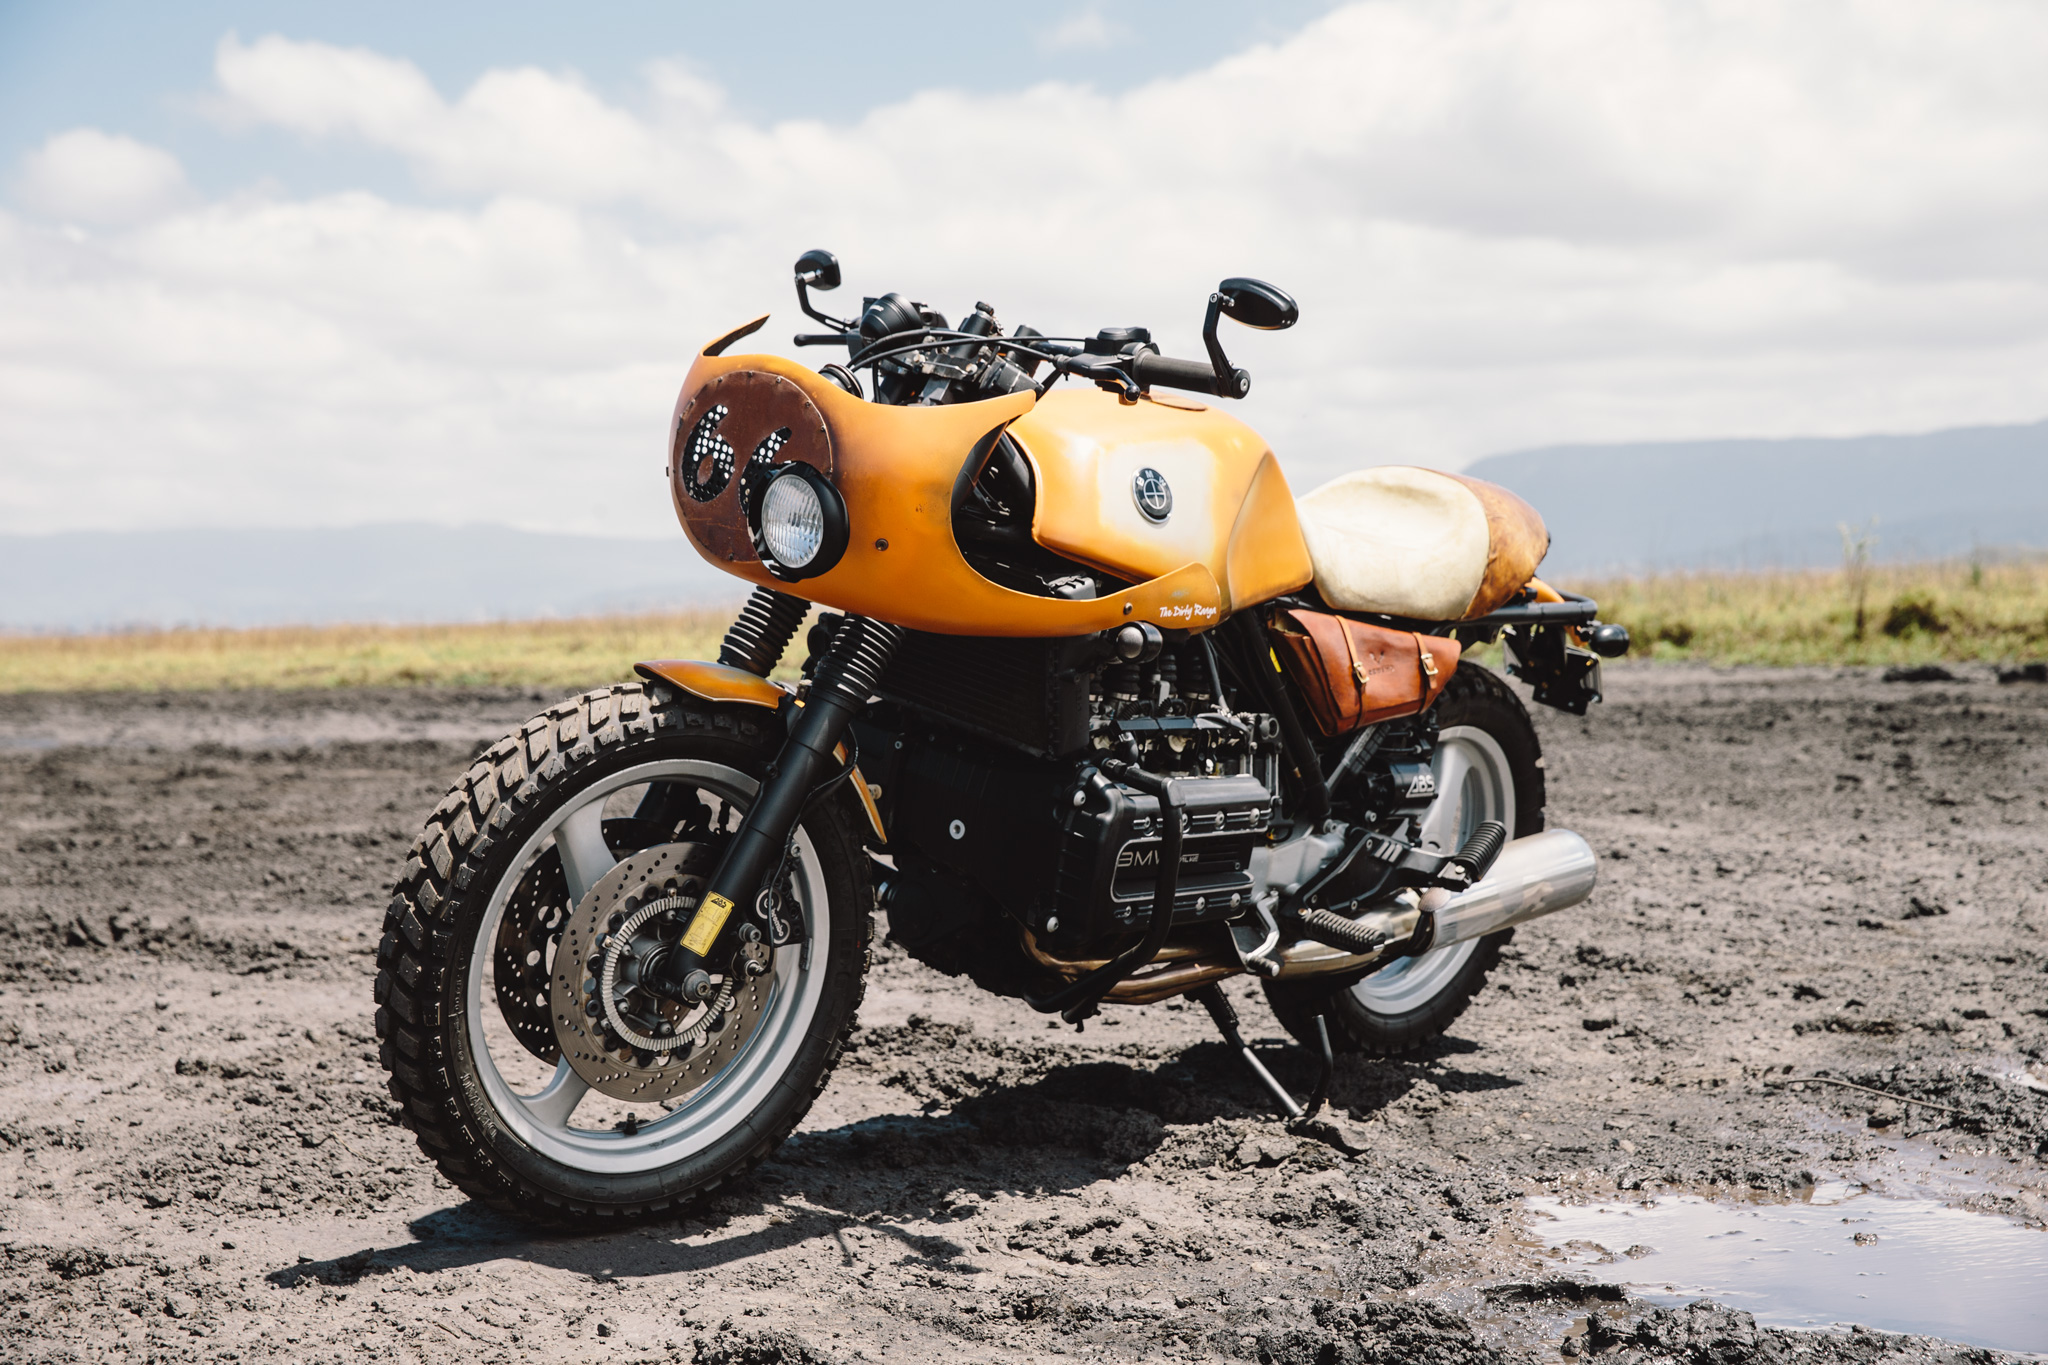 bmw_k1100_tracker_cafe_racer-175